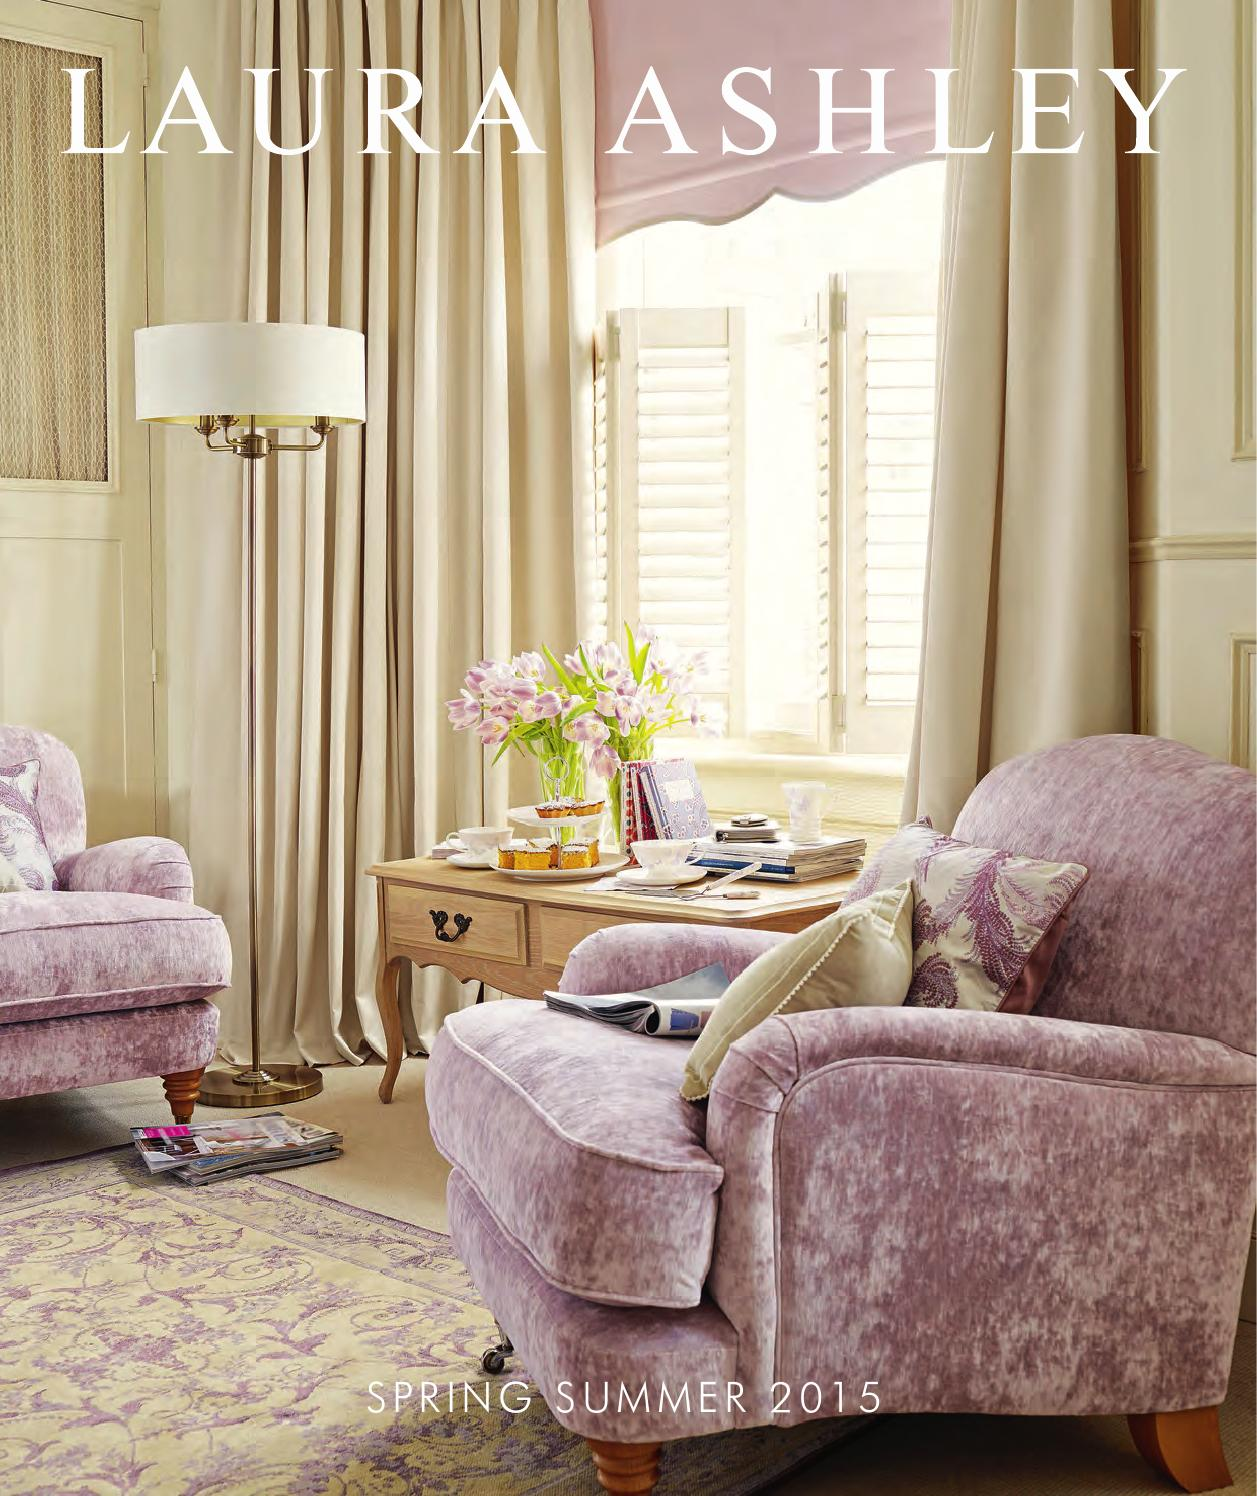 Laura ashley spring summer 2015 catalogue by stanislav - Cojines modernos para sofas ...